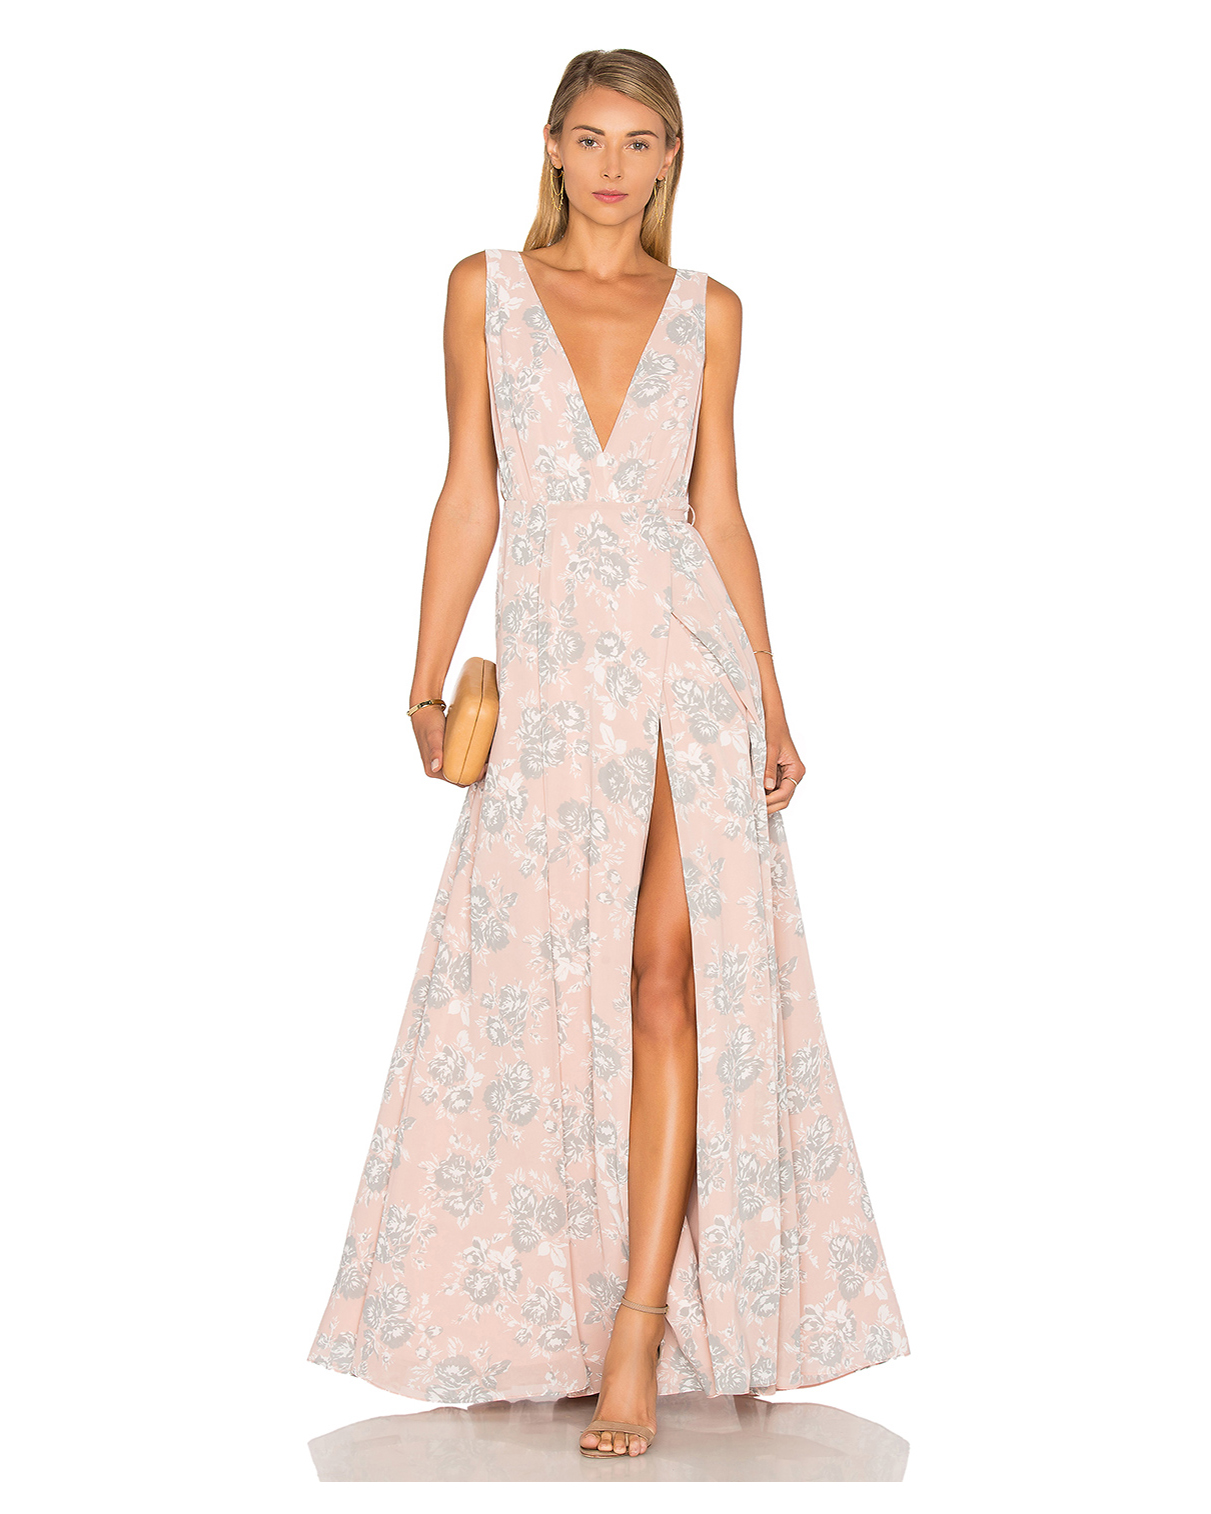 peach Wrap front with tie closure maxi dress with gray and white floral pattern